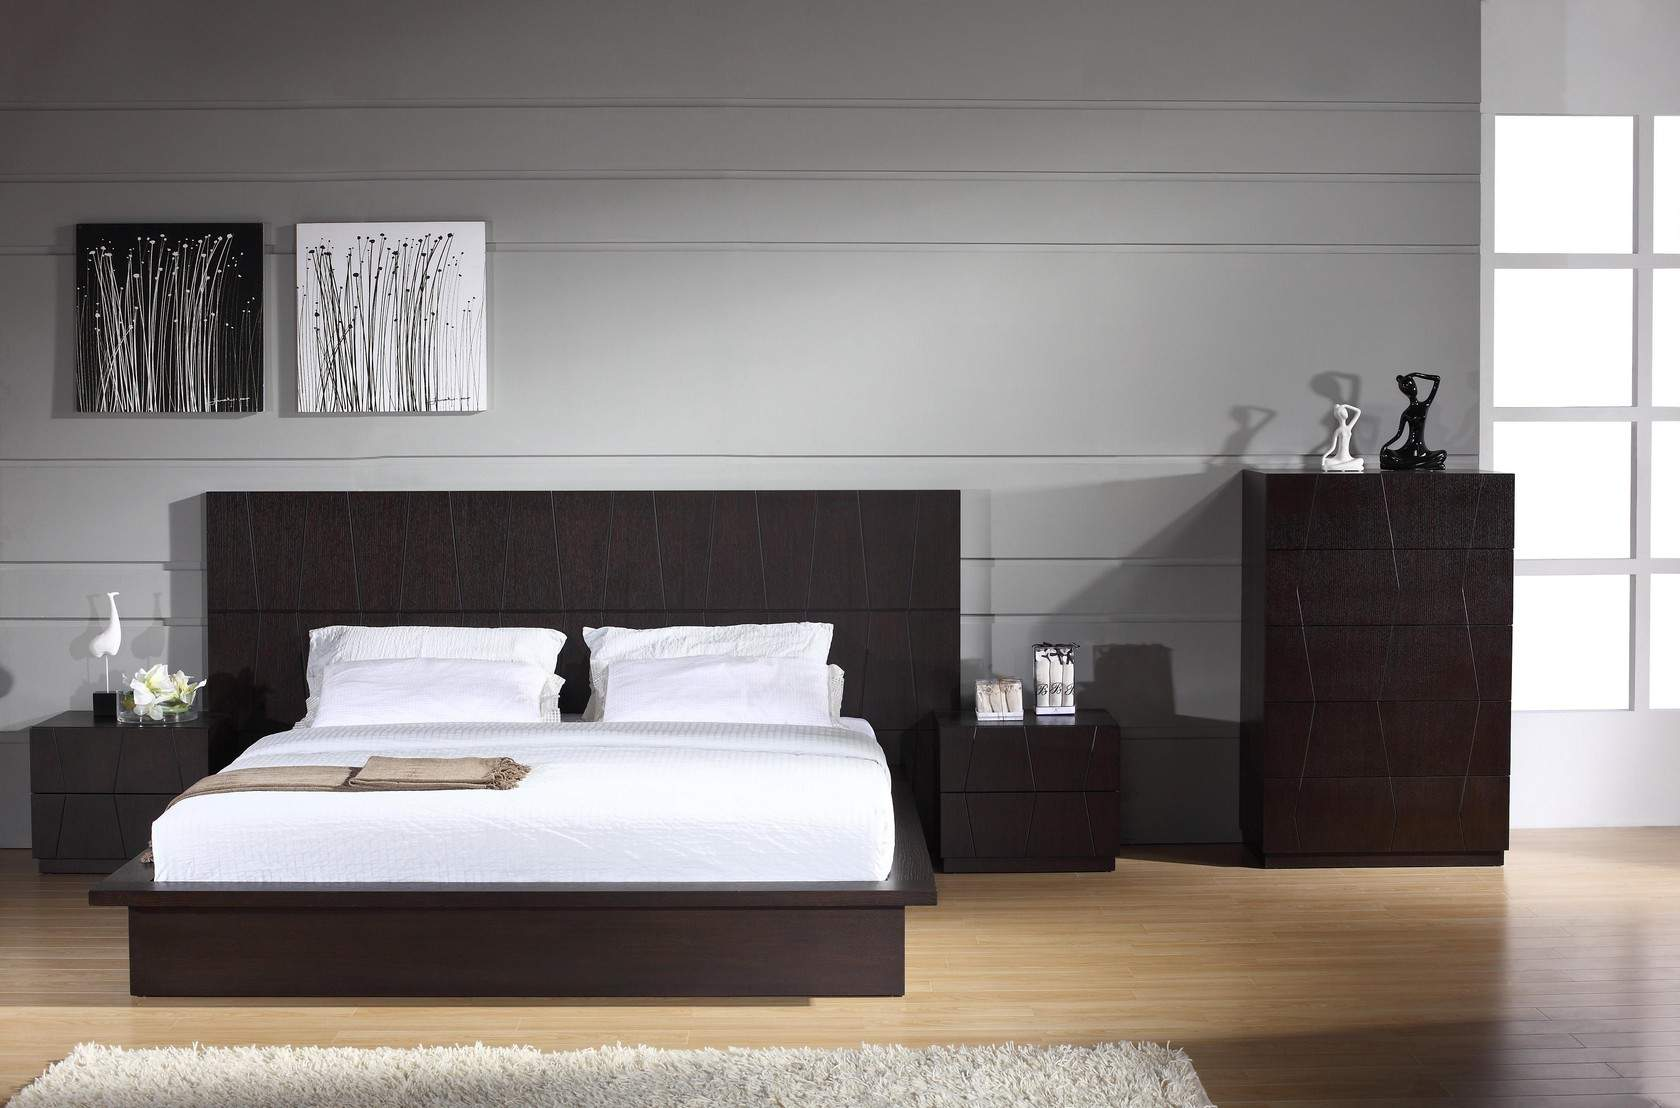 Tips on styling and purchasing modern bedroom furniture sets